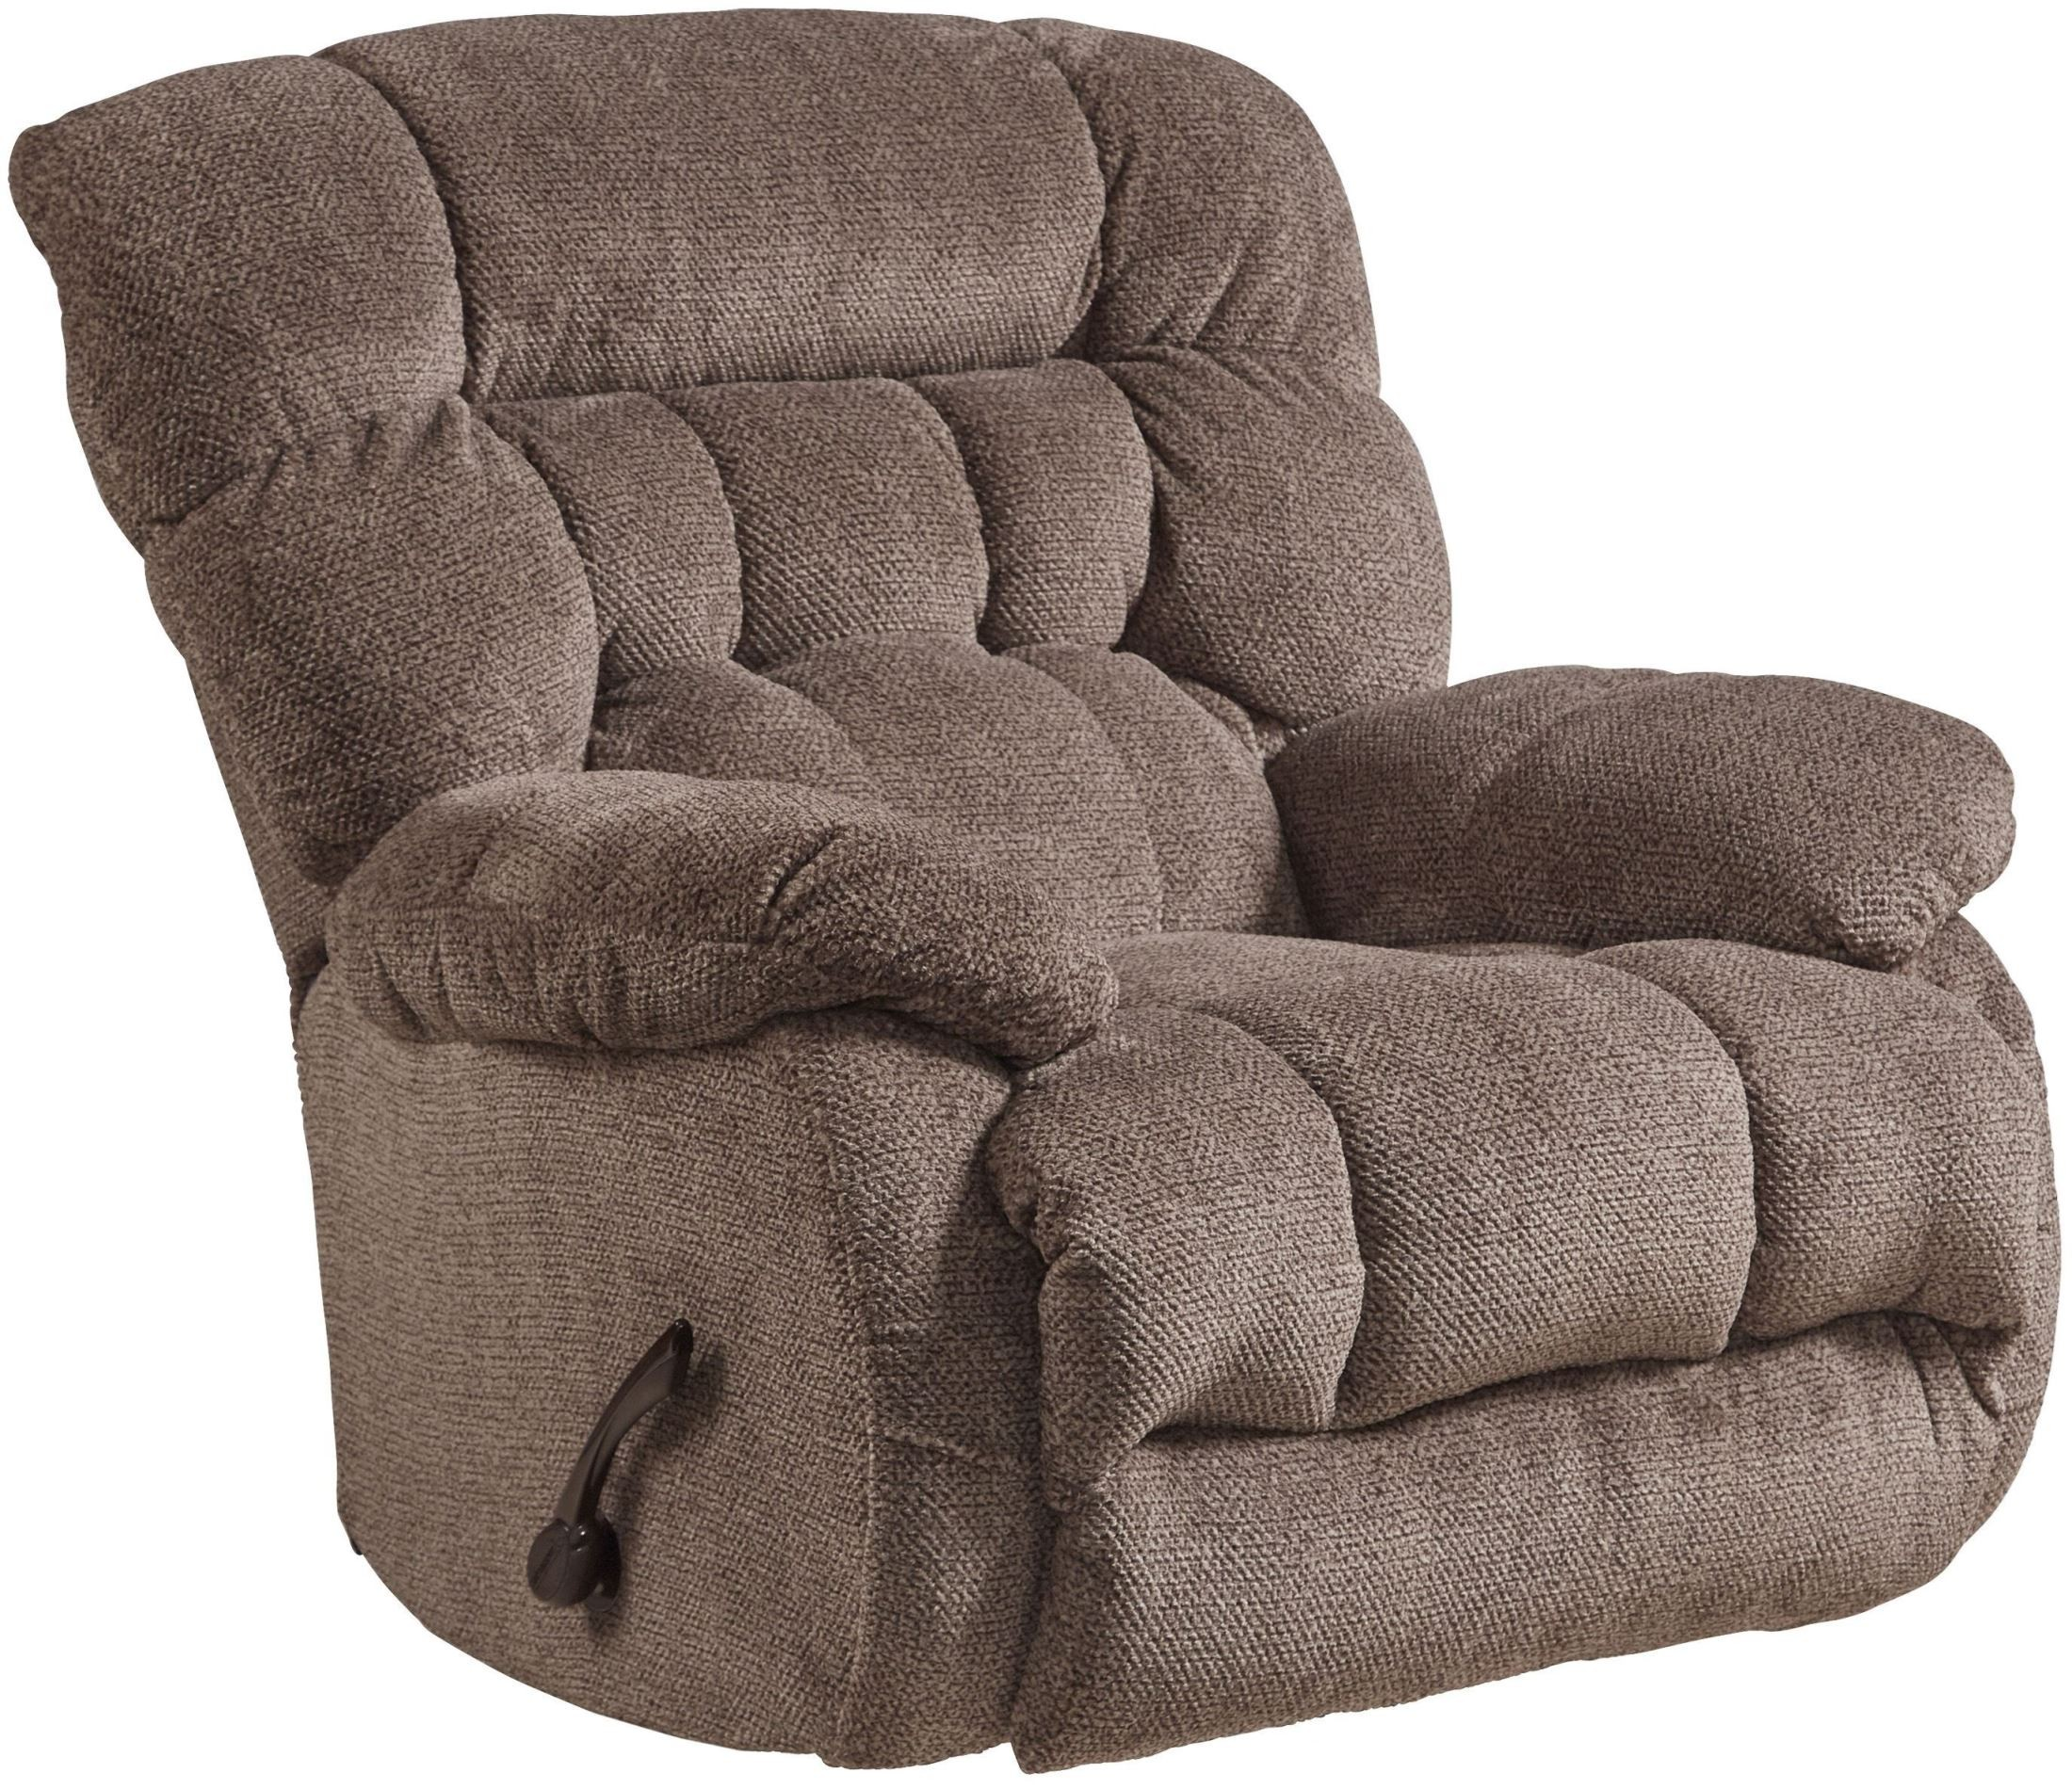 Daly chateau chaise swivel glider recliner from catnapper for Catnapper cloud nine chaise recliner